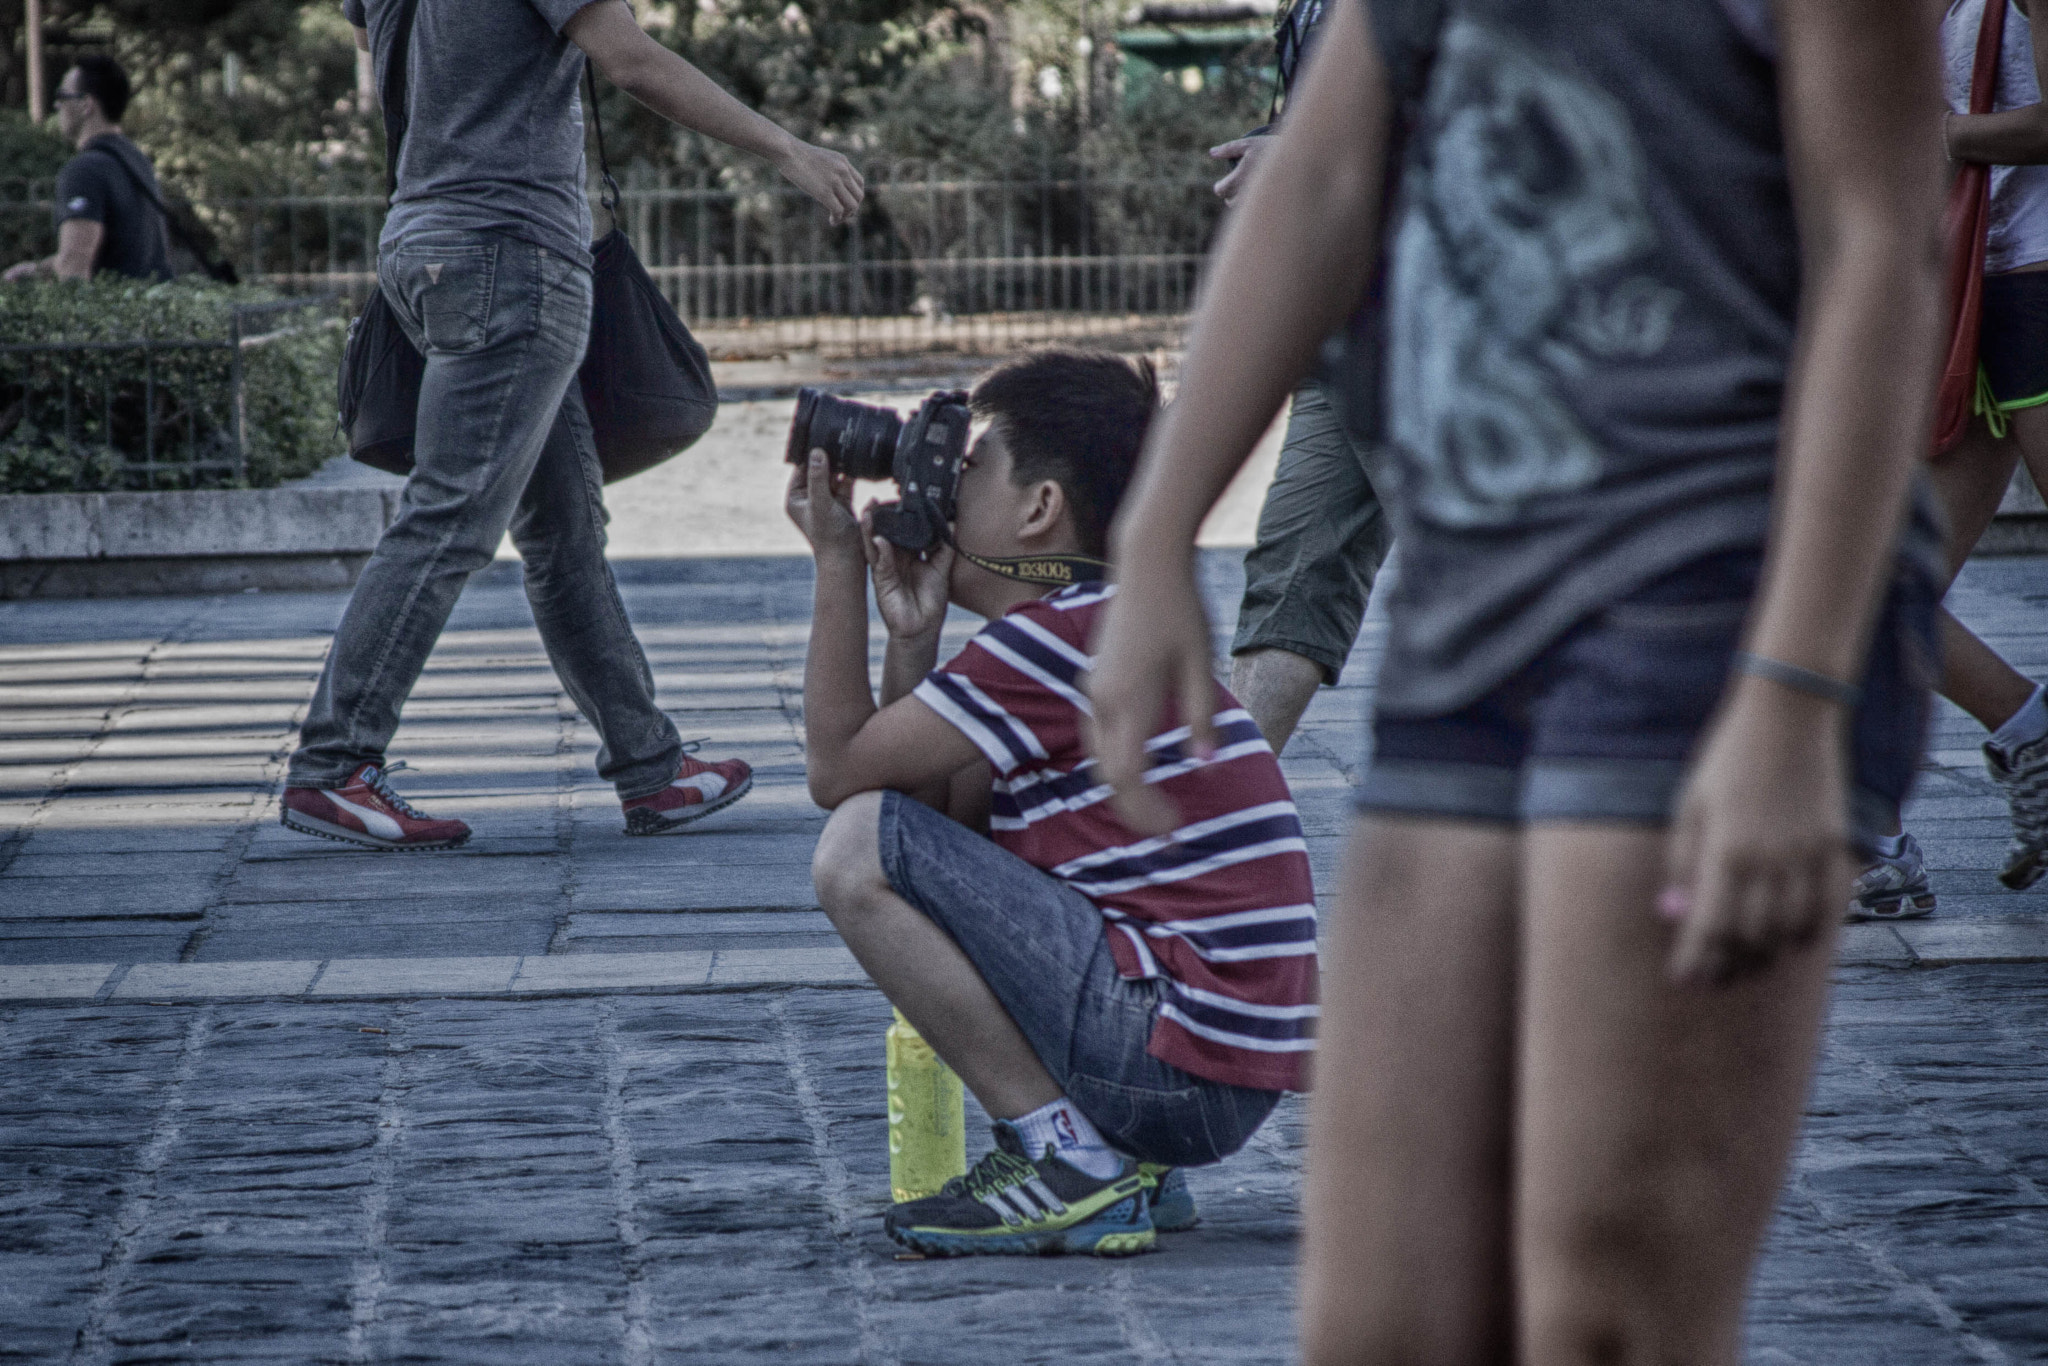 Photograph Capturing the Moment by Gregory Buford on 500px